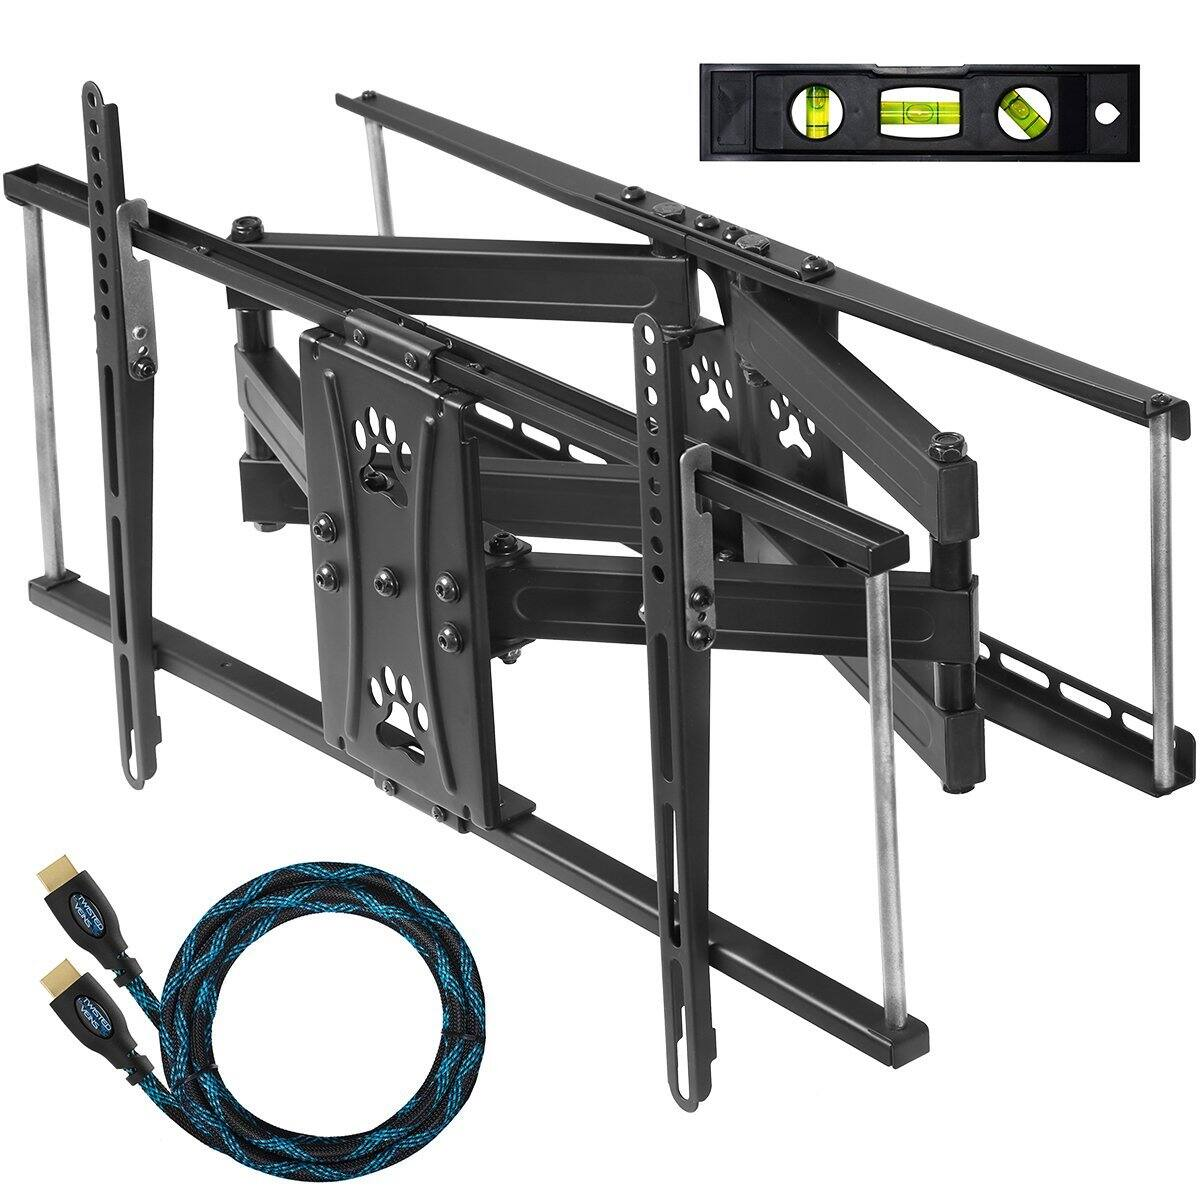 "Back Again - Cheetah 32""-65"" Dual Articulating Arm TV Wall Bracket Mount w/ 10' HDMI Cable & Leveler $34.98 + Free Shipping Amazon.com"